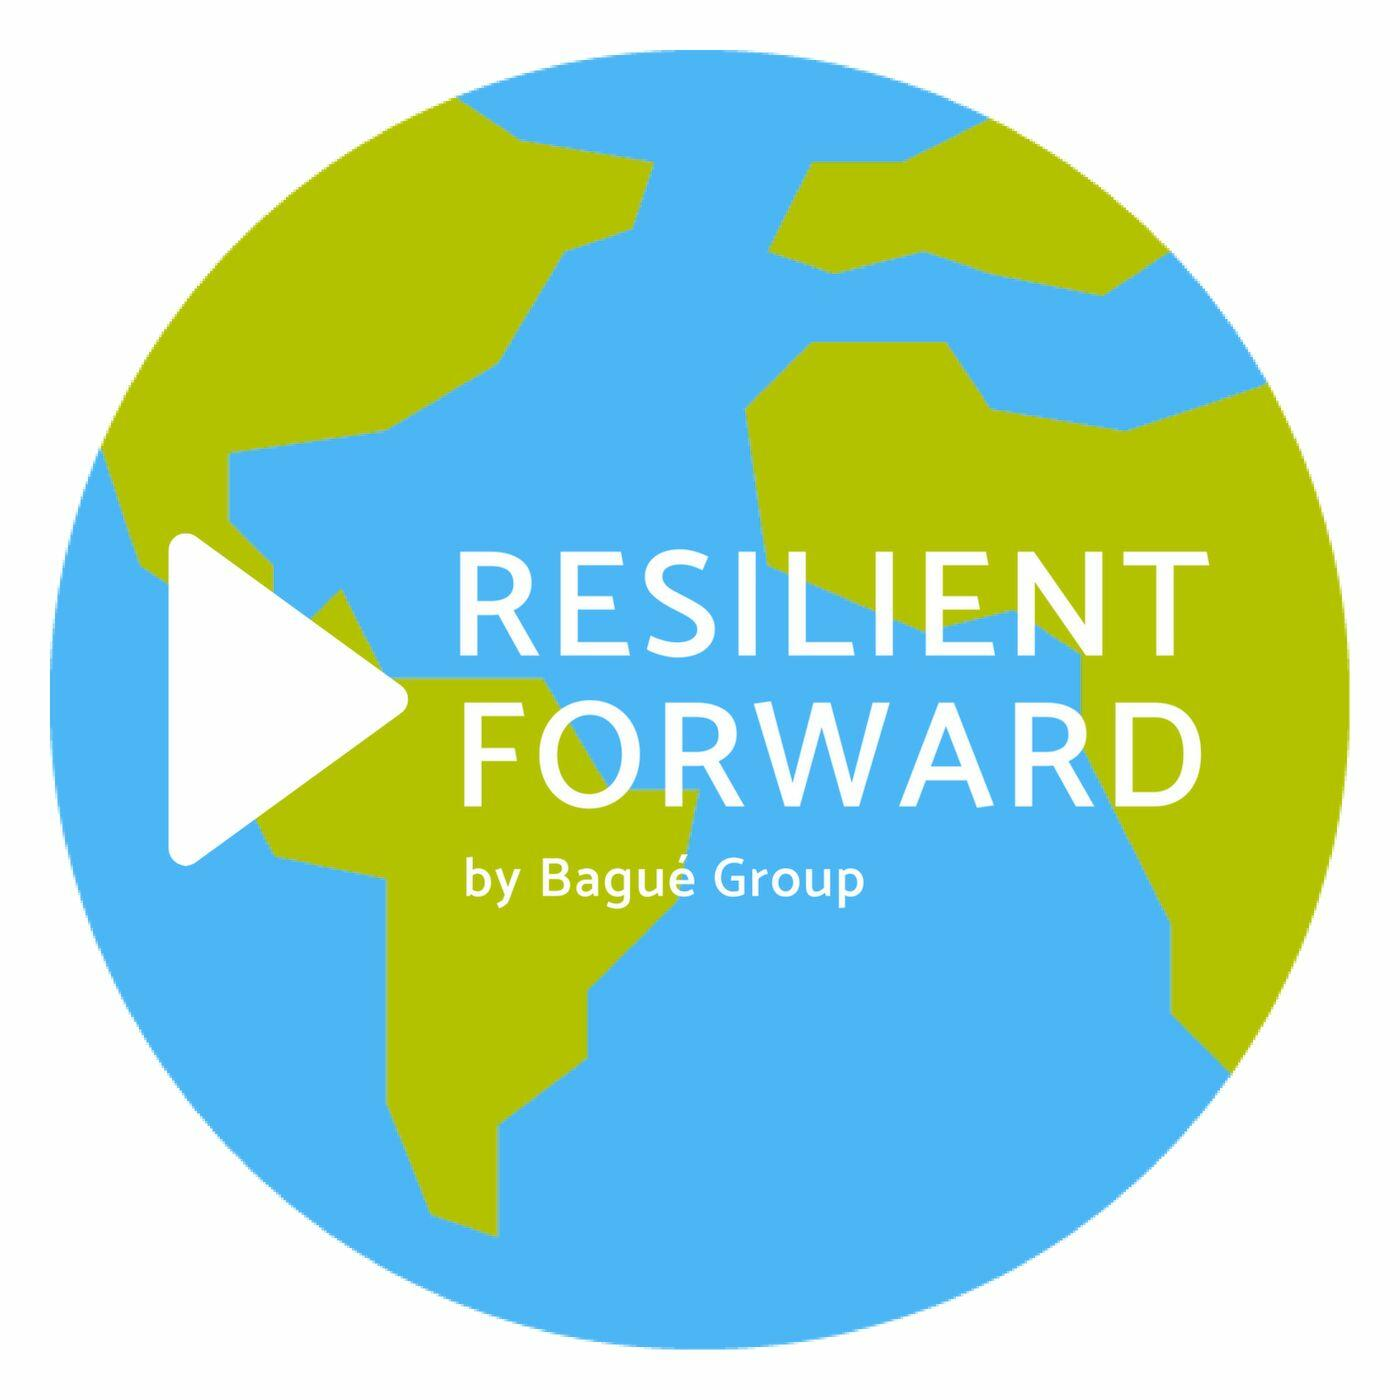 Resilient Forward